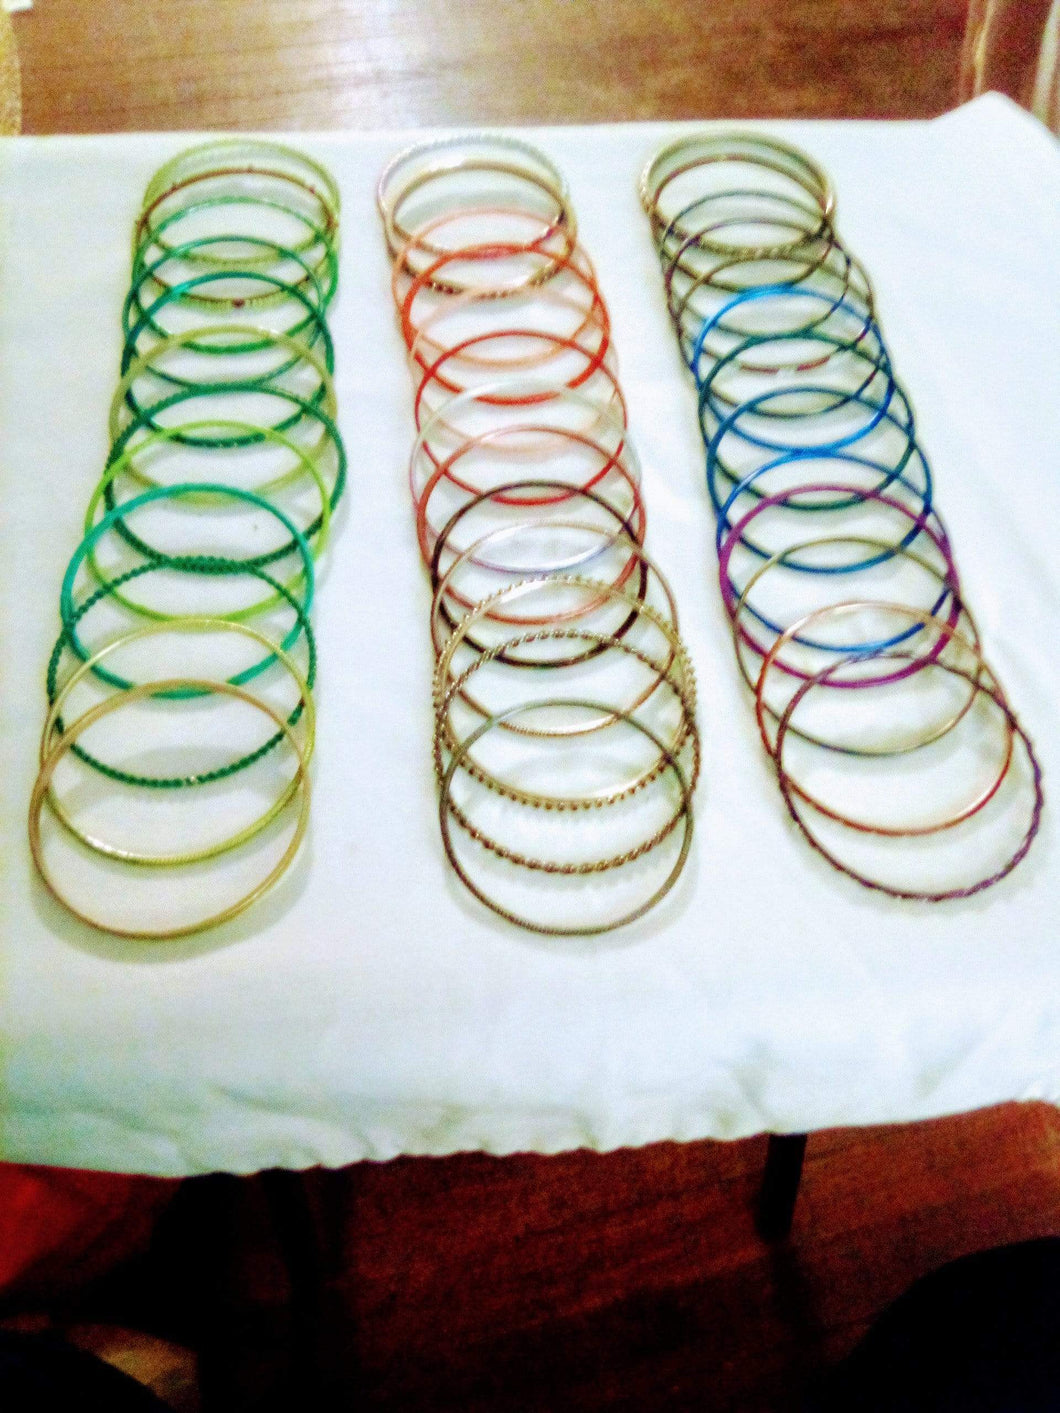 A colorful round bracelet lot - B&P'sringsnthings